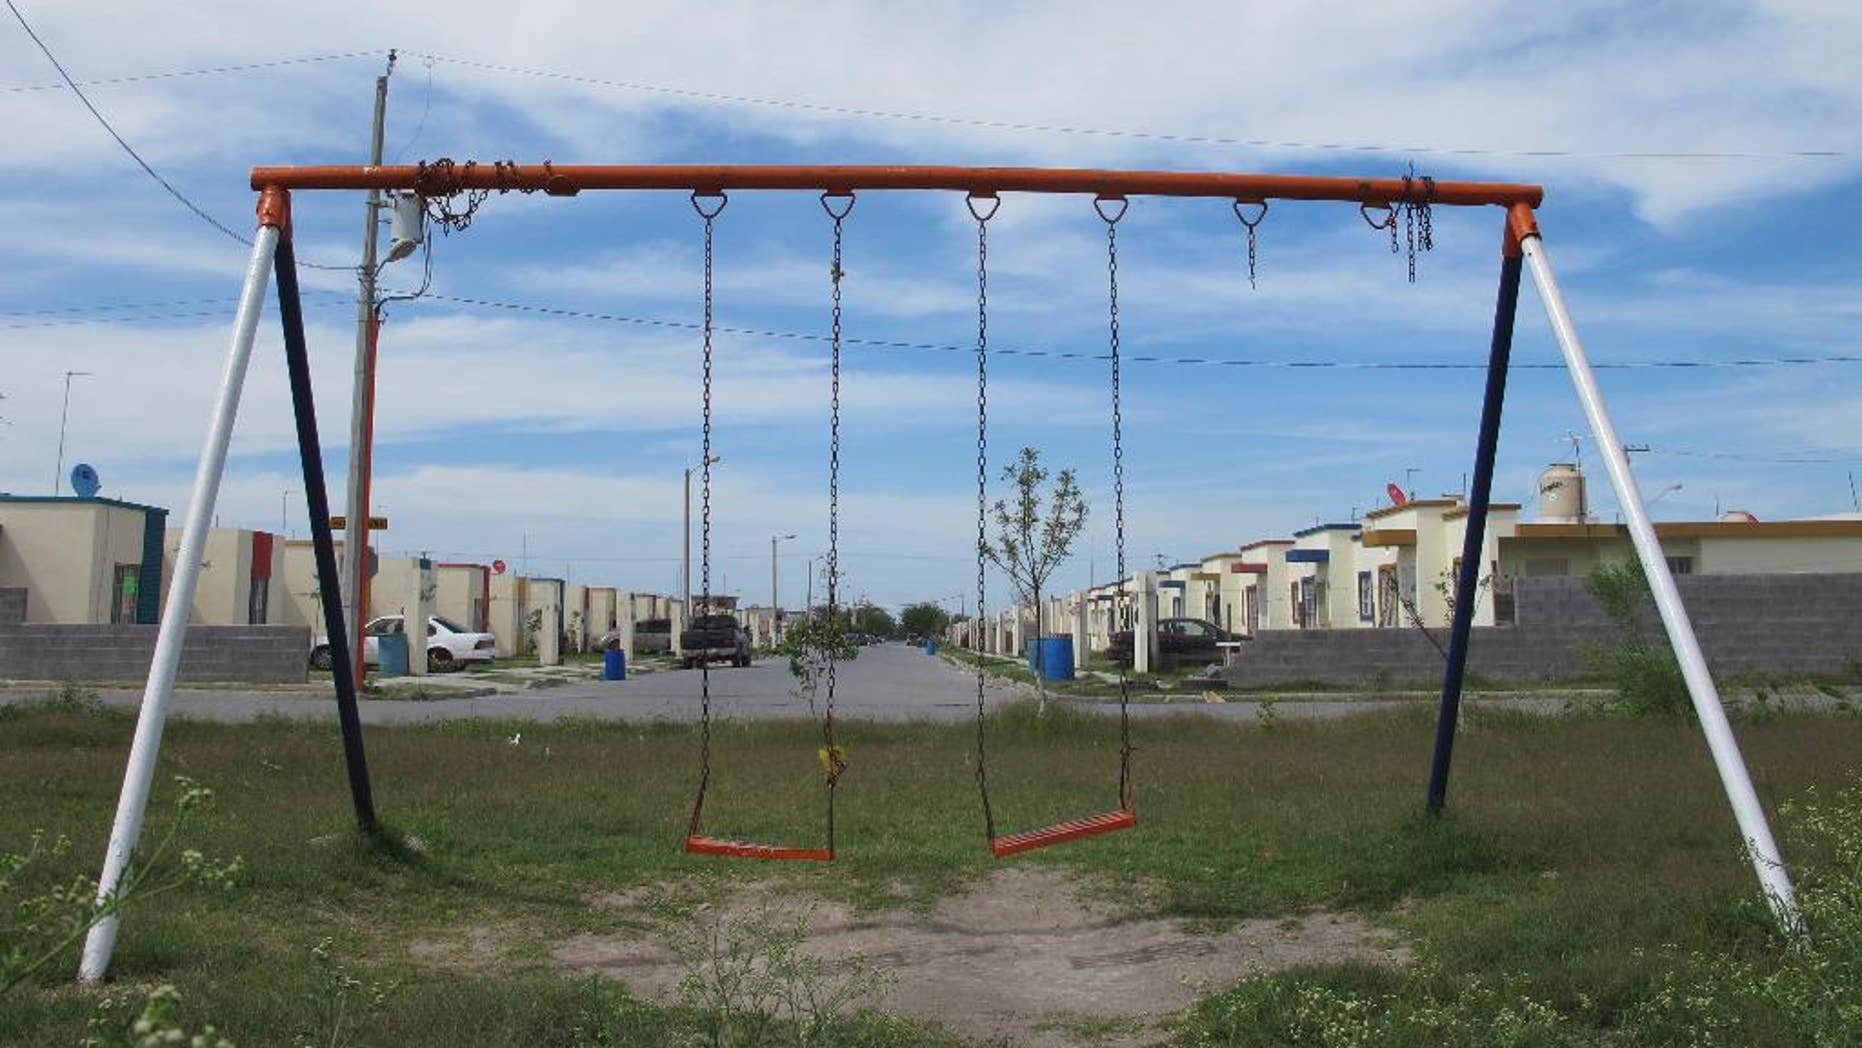 In this April 9, 2014 photo, a playground stands empty in the San Pedro subdivision on the outskirts of Matamoros, in Mexico's state of Tamaulipas. Of four women interviewed in this working-class neighborhood, none would give their names. One said her husband was taken by gunmen 2 ½ years ago. Another said it had been three years since her 28-year-old son disappeared. Yet another recounted when a marine helicopter opened fire from the air, sending residents scrambling for cover. (AP Photo/Christopher Sherman)